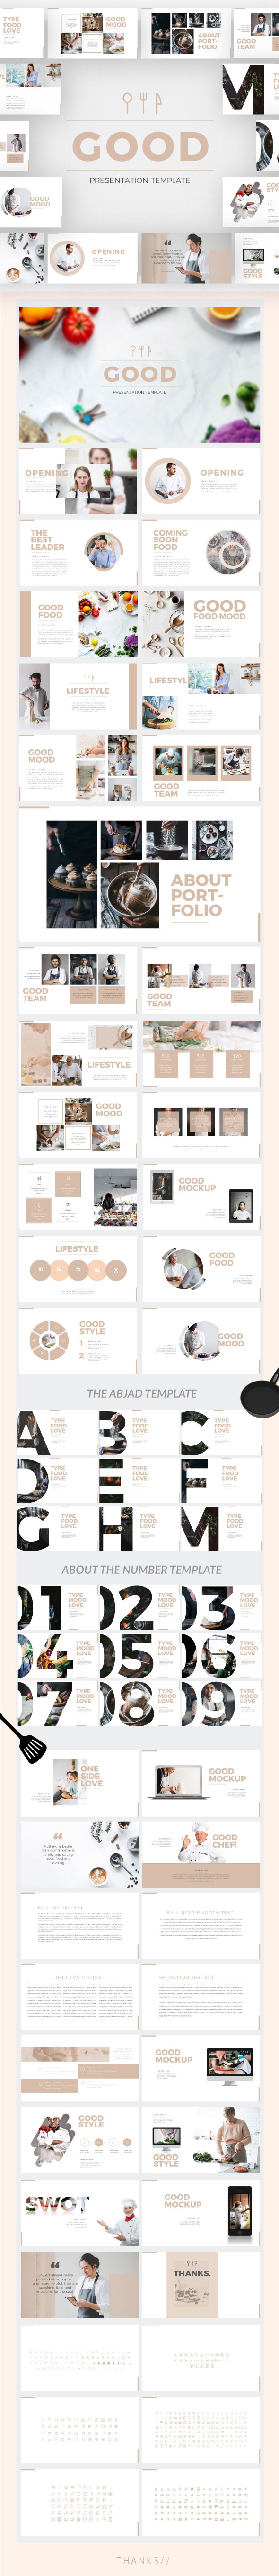 GraphicRiver Good Googleslide Templates 21093299